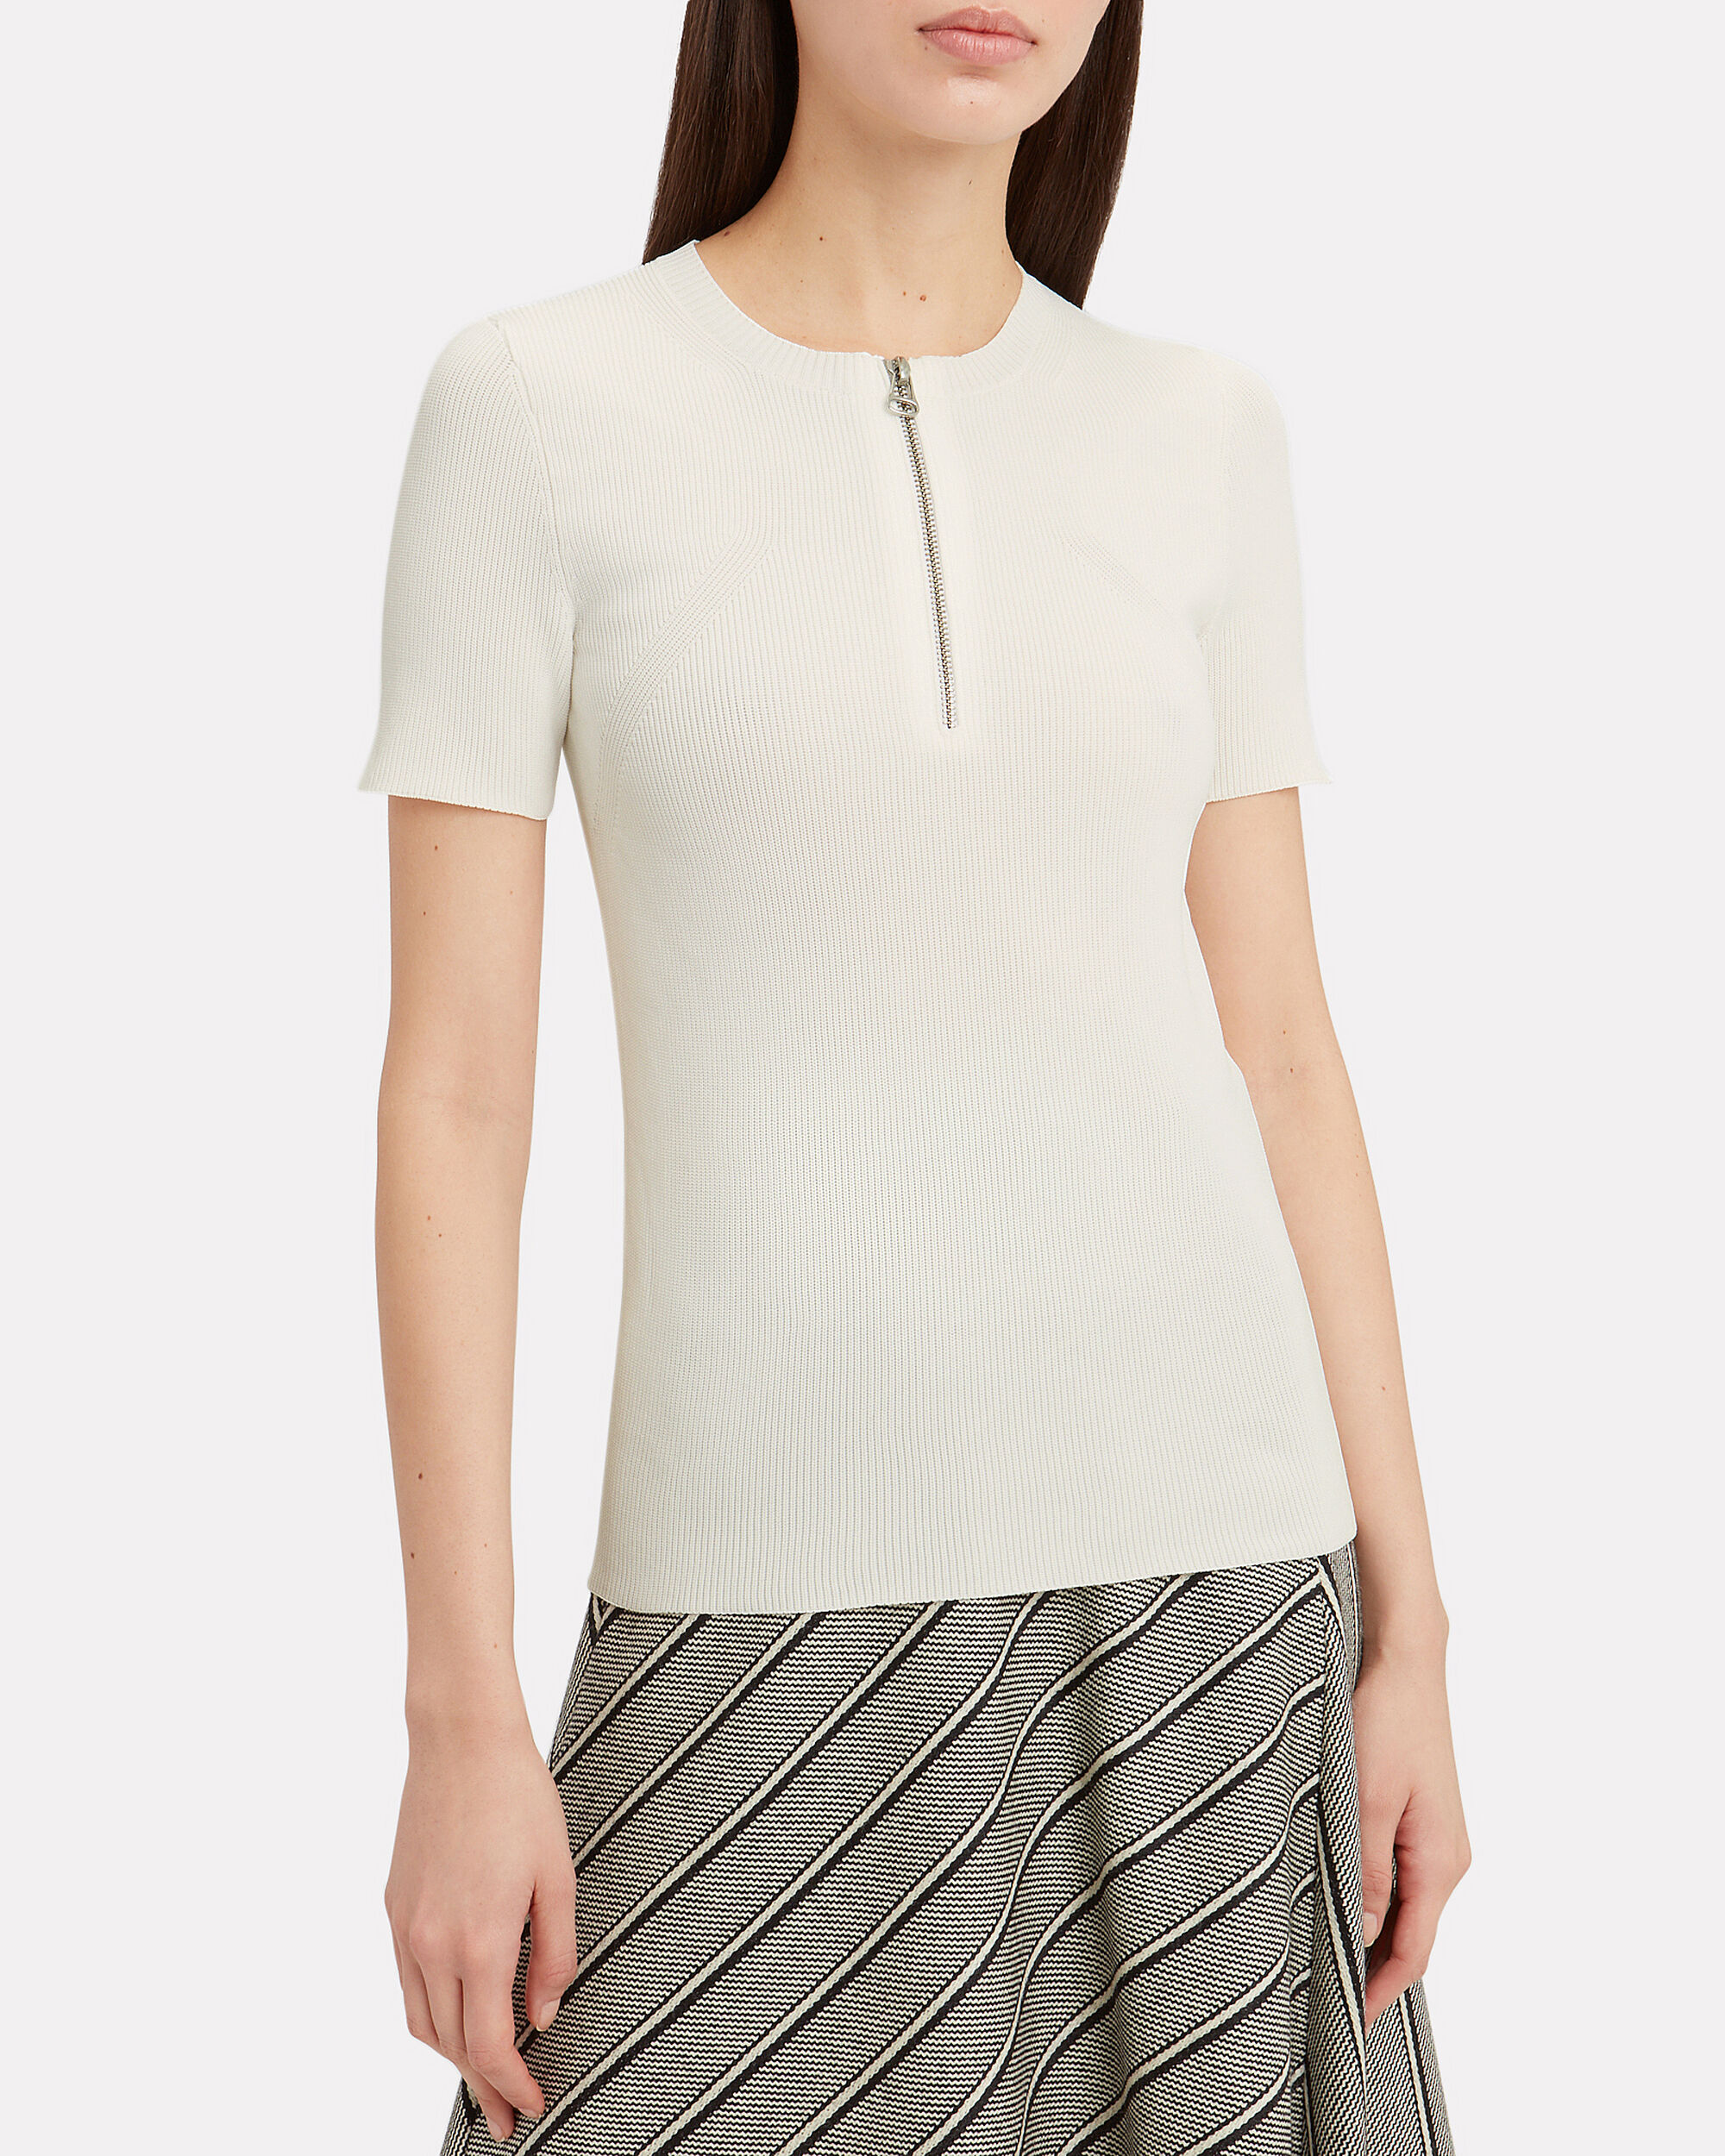 Zip Detail Knit Top, WHITE, hi-res